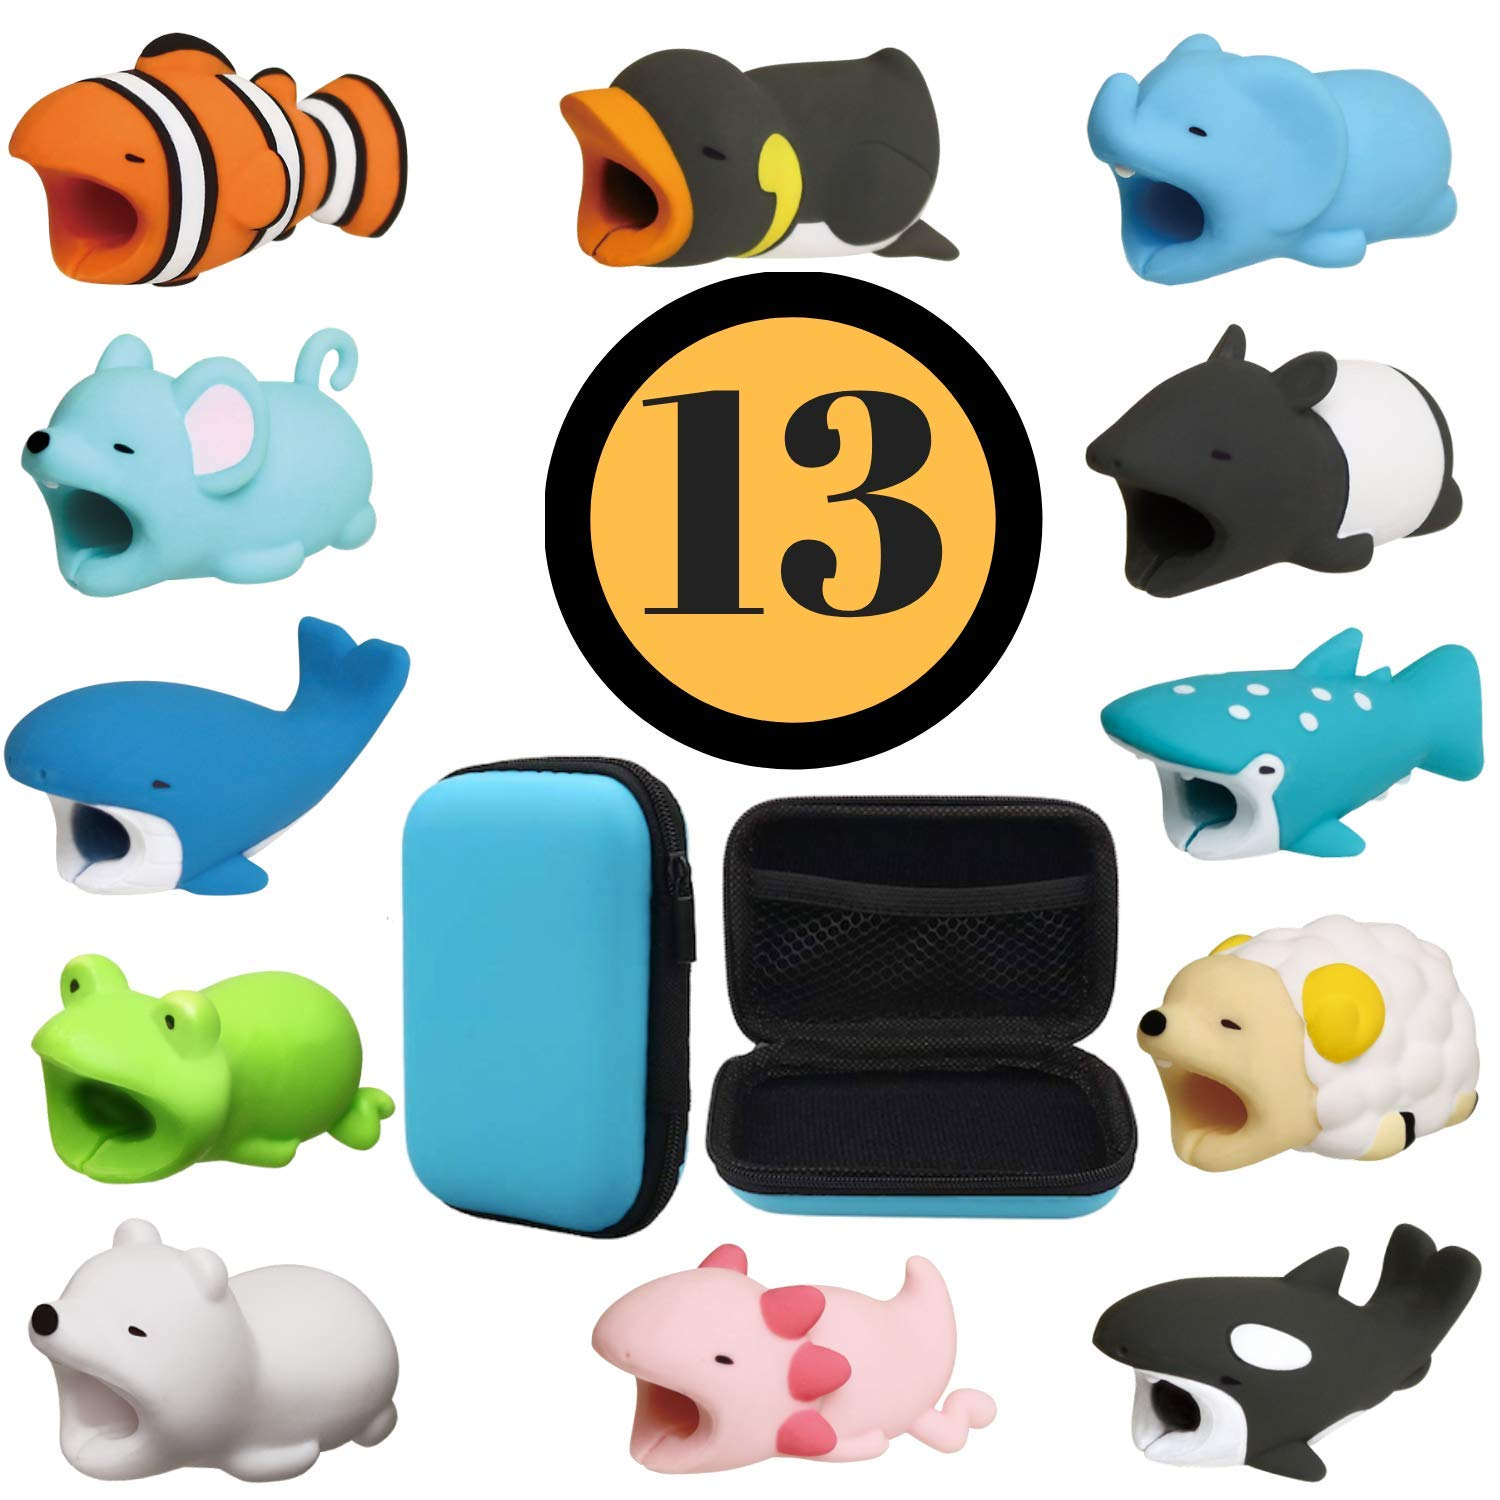 Animal Buddies Phone Cord Bites - Cable Protector for iPhone - Cute Animals Protects Cell Phone Accessories & Bites Data Line - Bite Cord Phone Accessory (7 Pieces w/Pouch) Official Animal Buddies